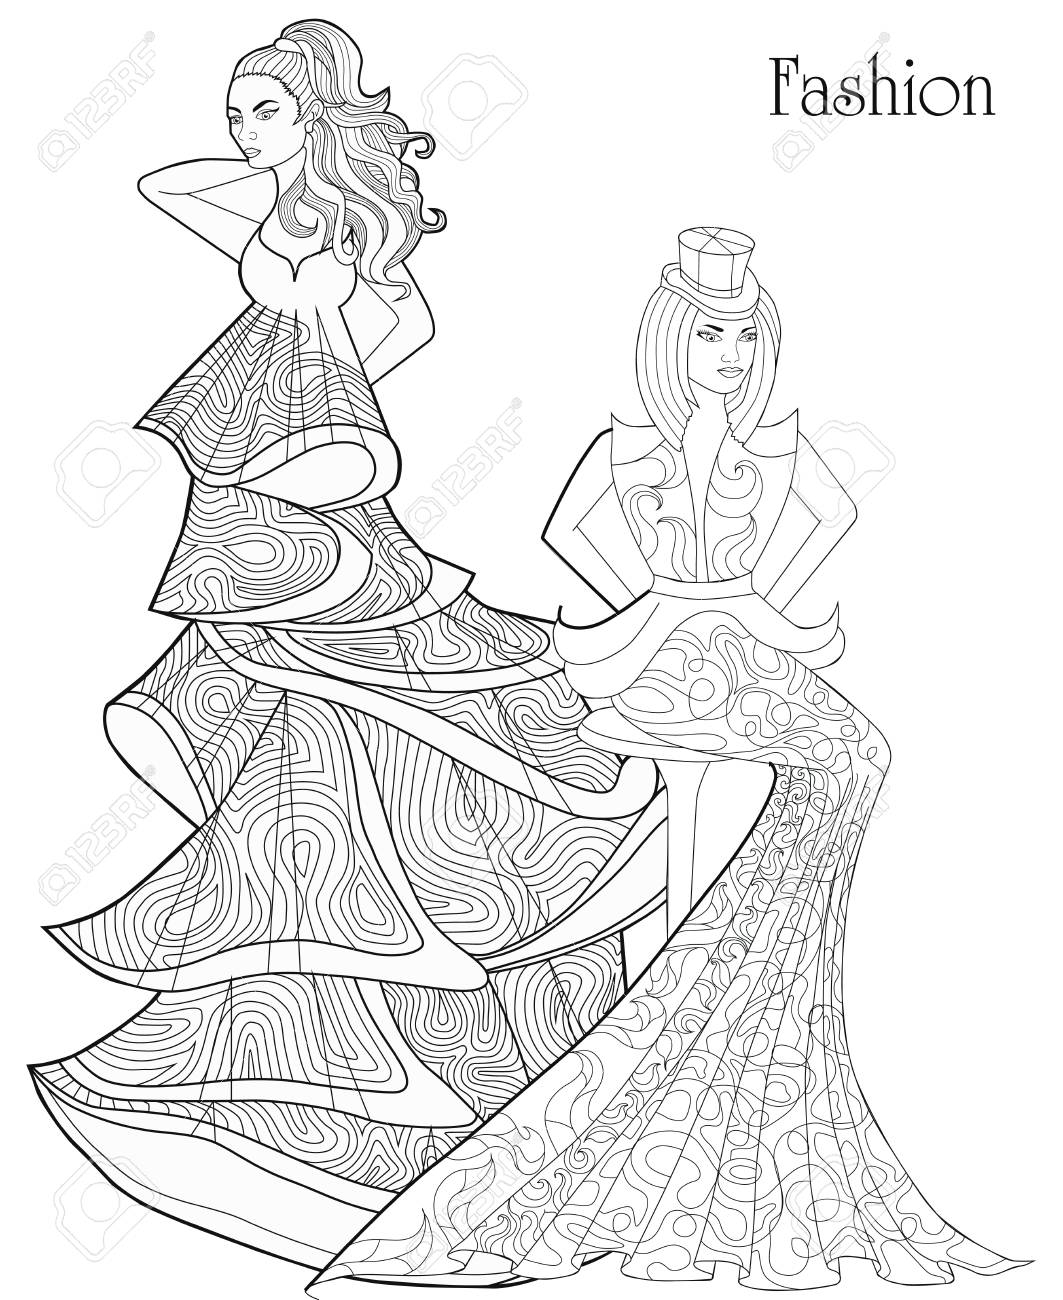 Color Therapy Fashion Anti Stress Coloring Book A Pair Of Girls In